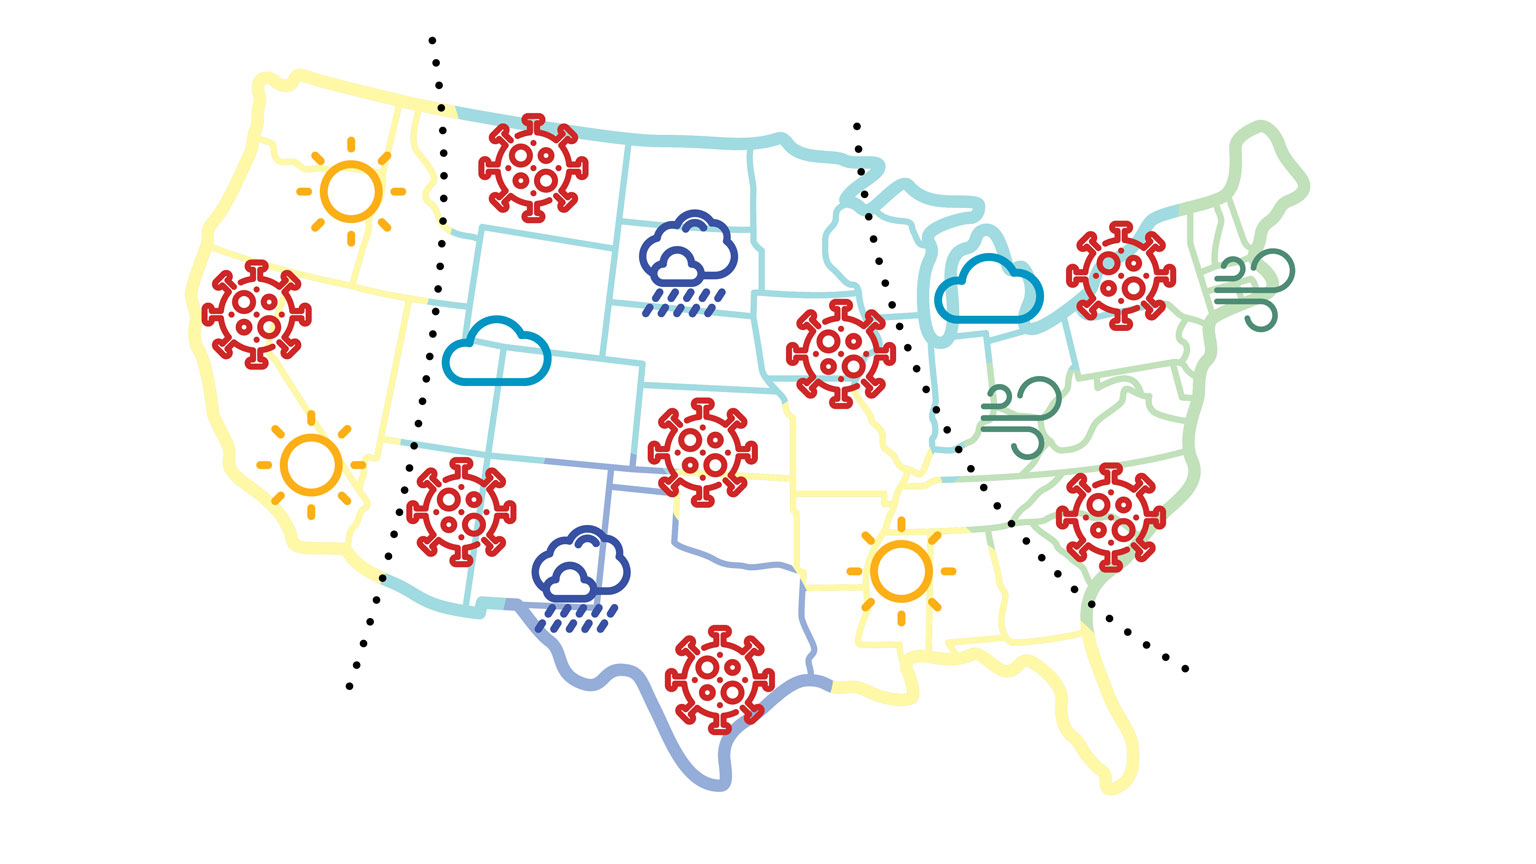 Illustration of a traditional weather map of the United States with several Covid-19 cells replacing regular weather patterns.